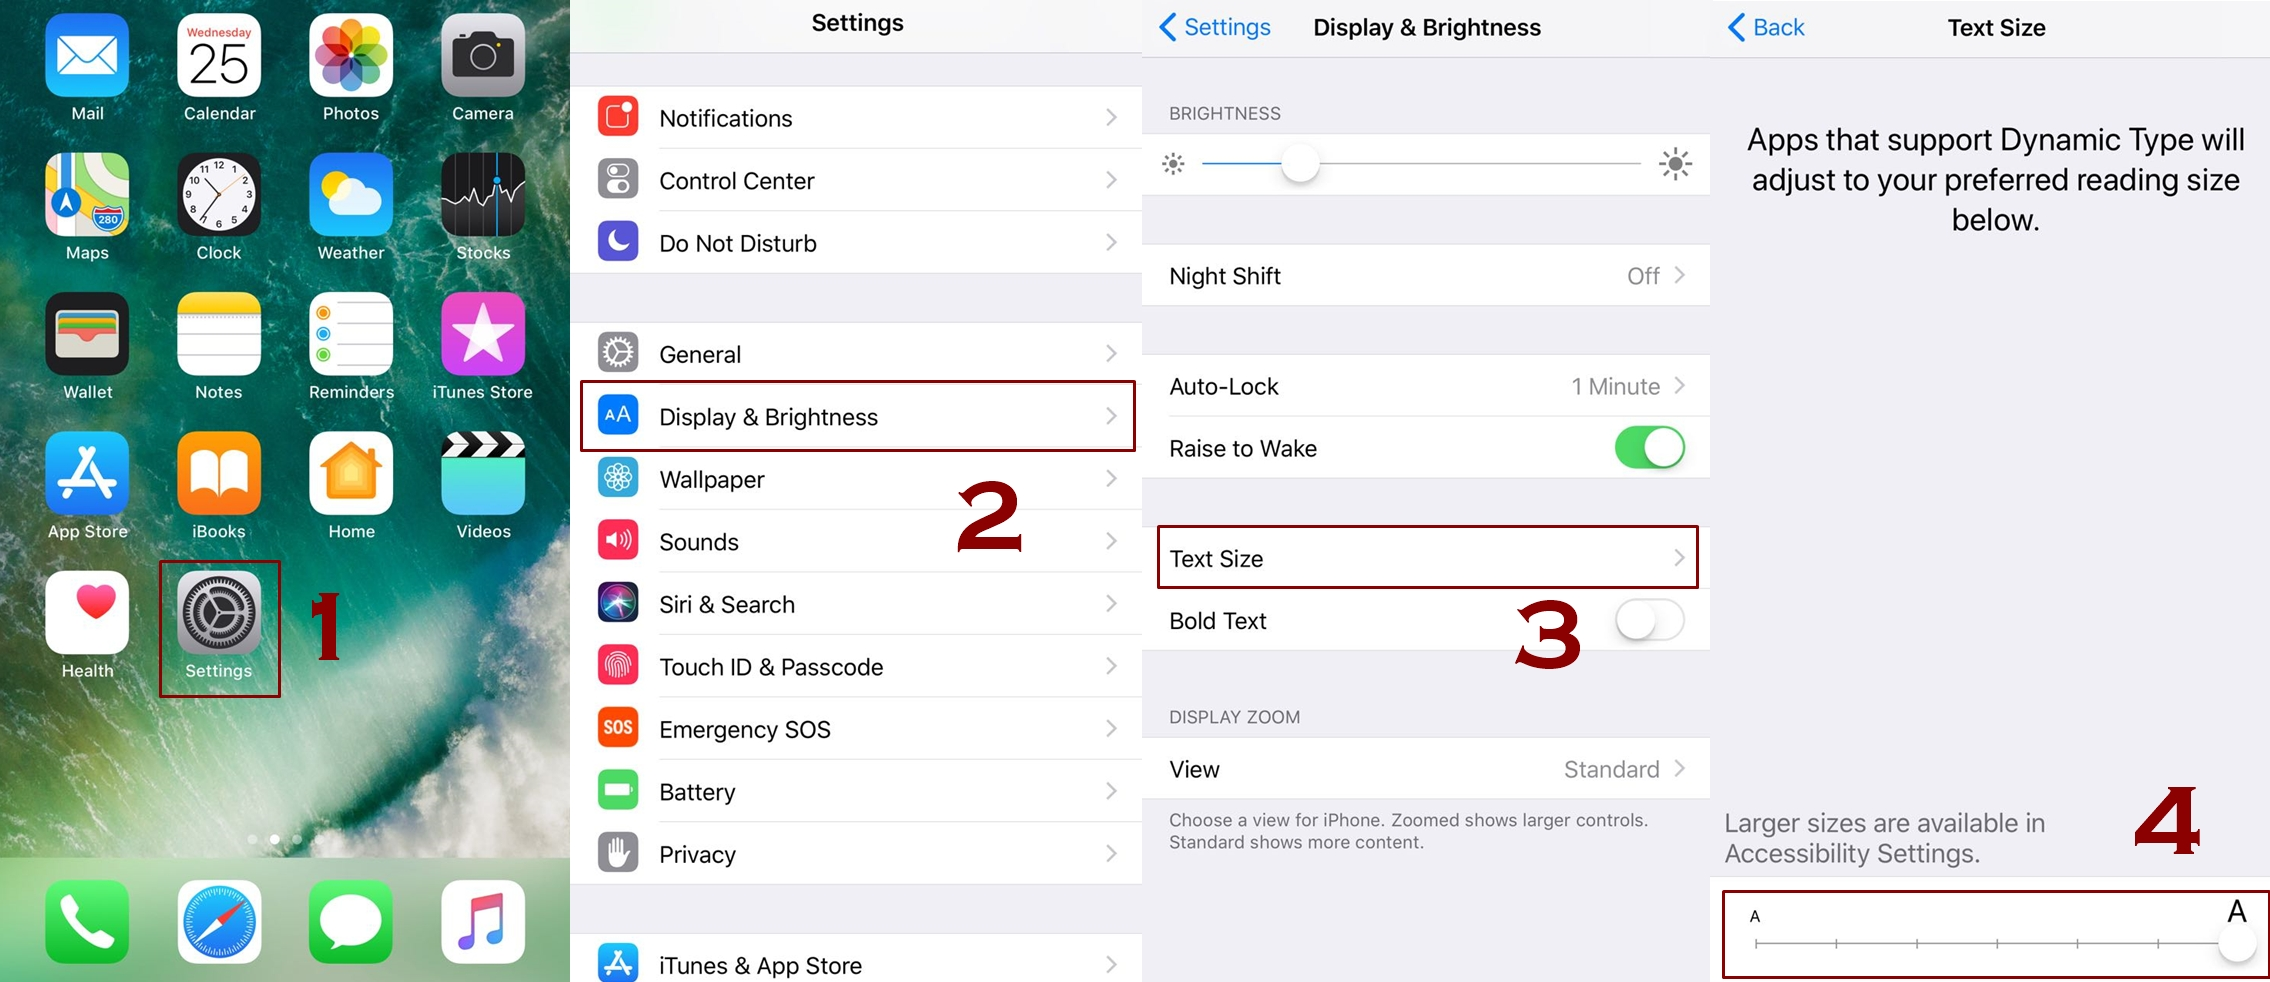 how to change text size on iphone from settings - How to change text size on iPhone